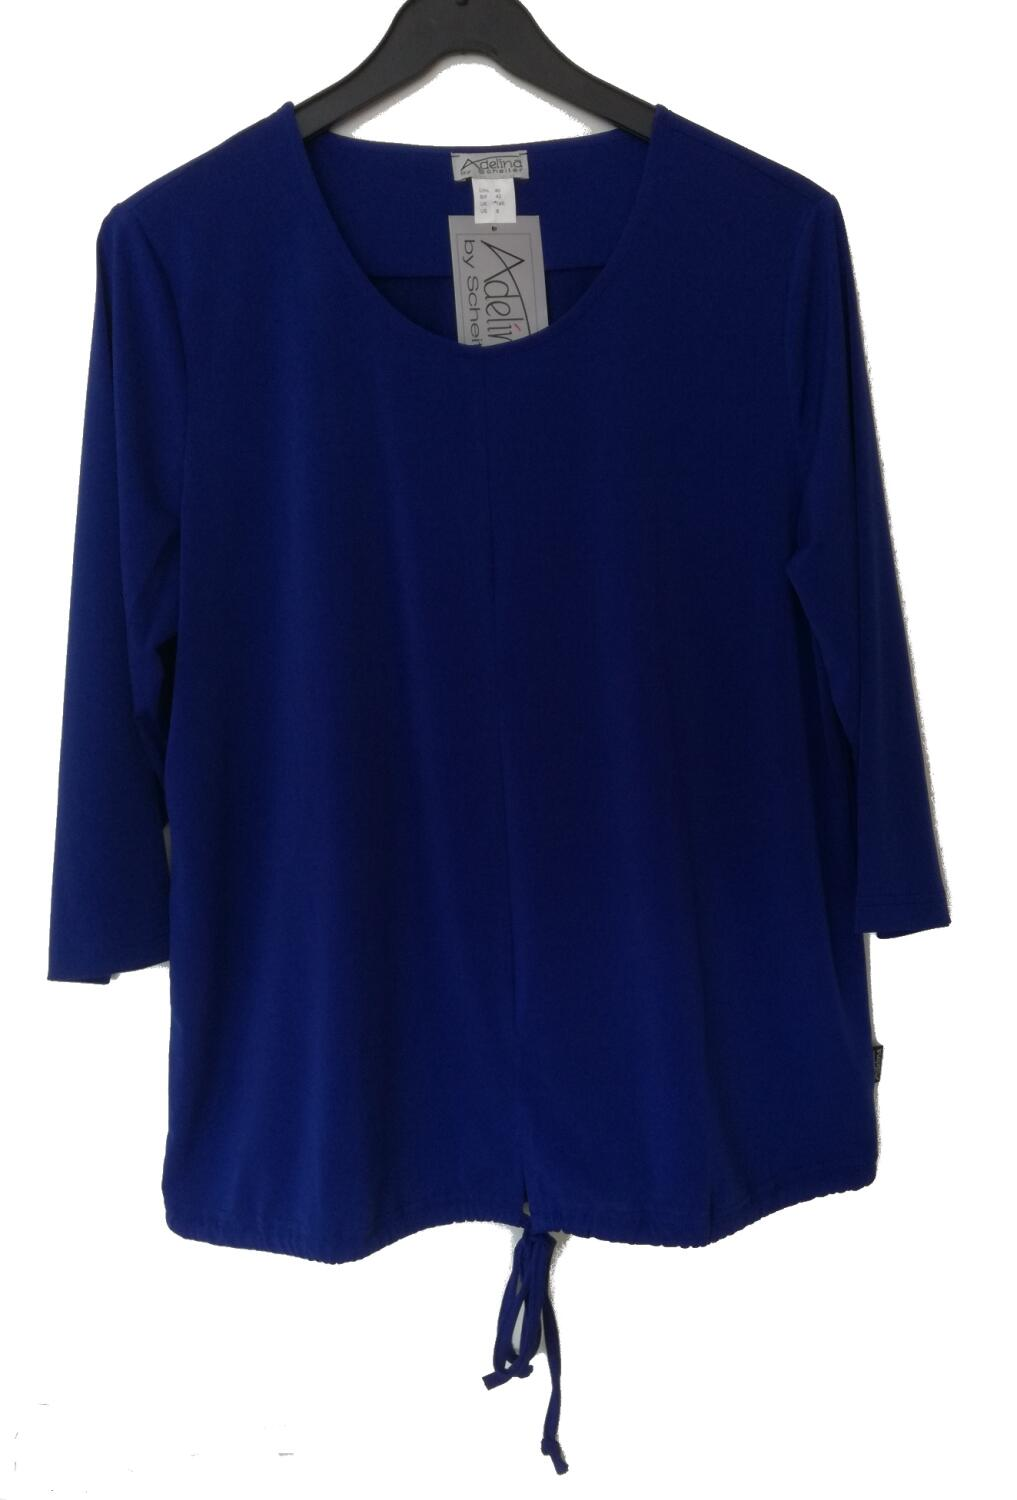 Adelina Shirt royalblau 3/4 Arm